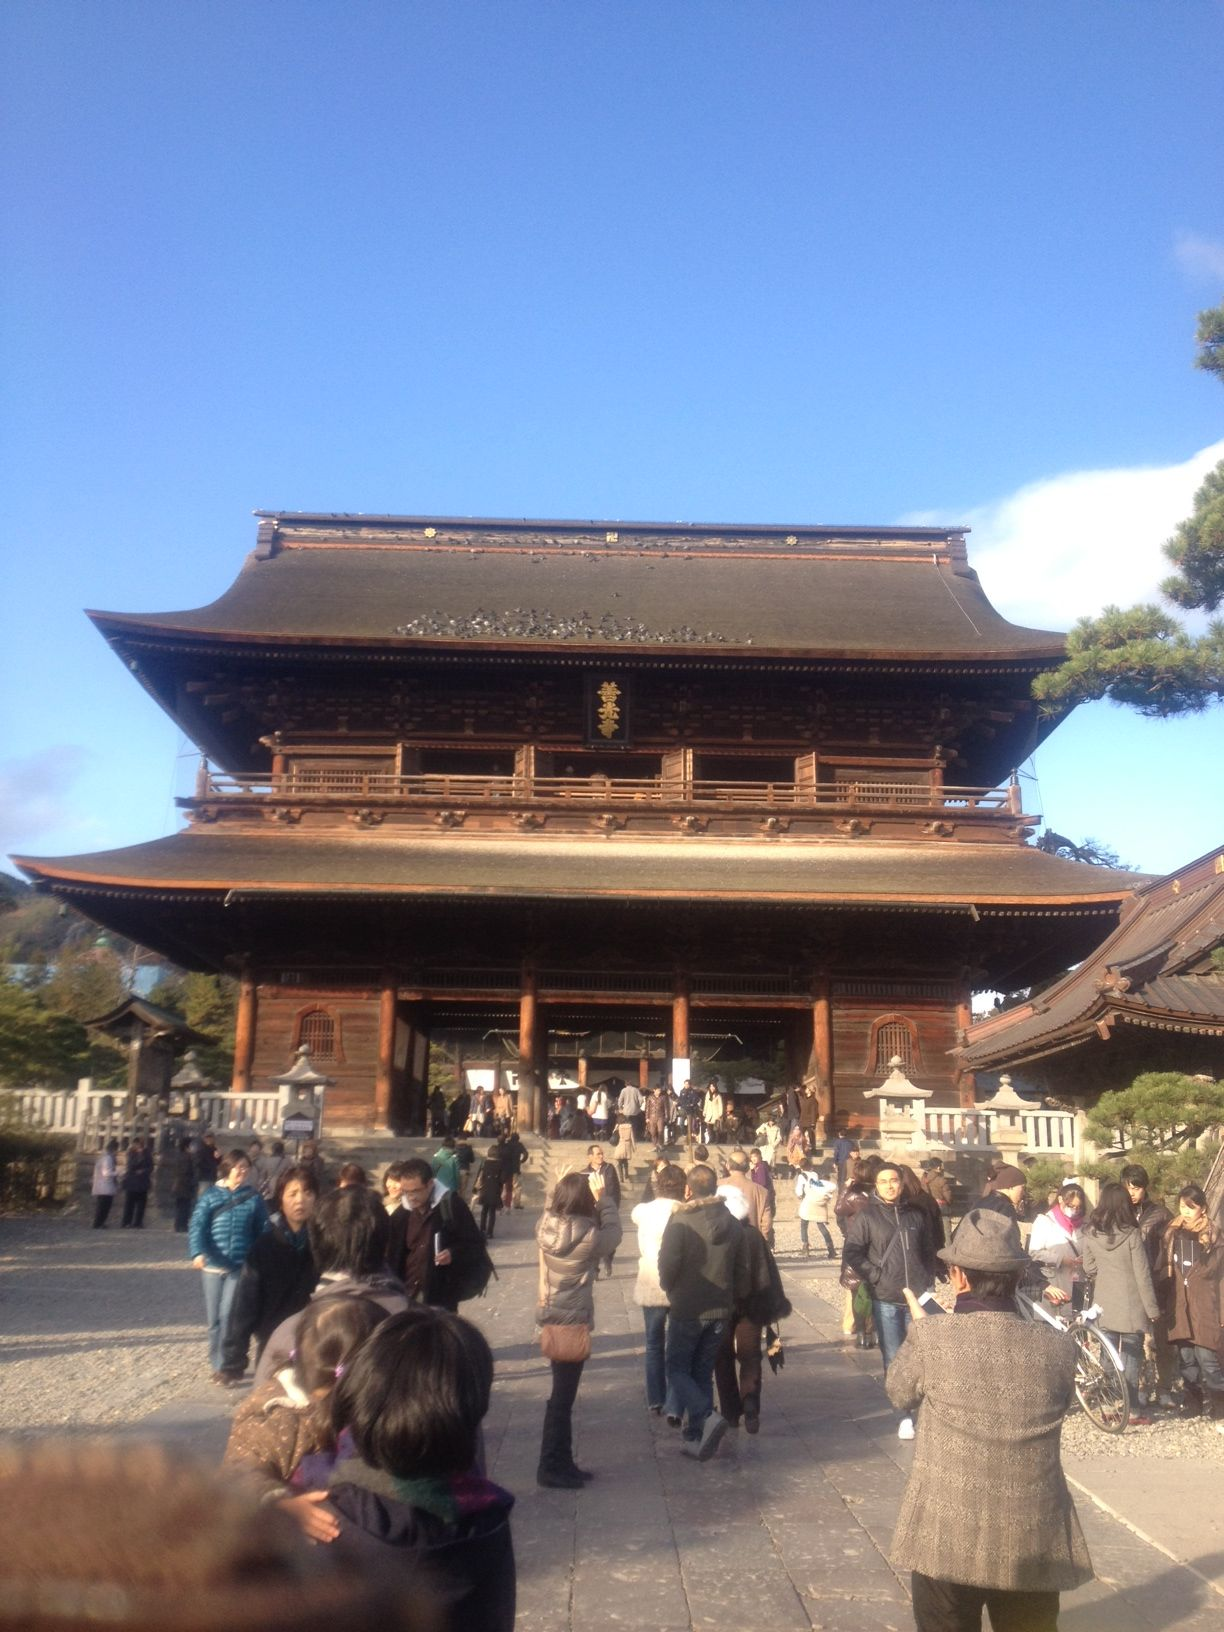 """The main gate of a temple""""Nagano Zenko-ji"""". Though I could climb it in this main gate of a temple, I stopped it because I was quite high."""